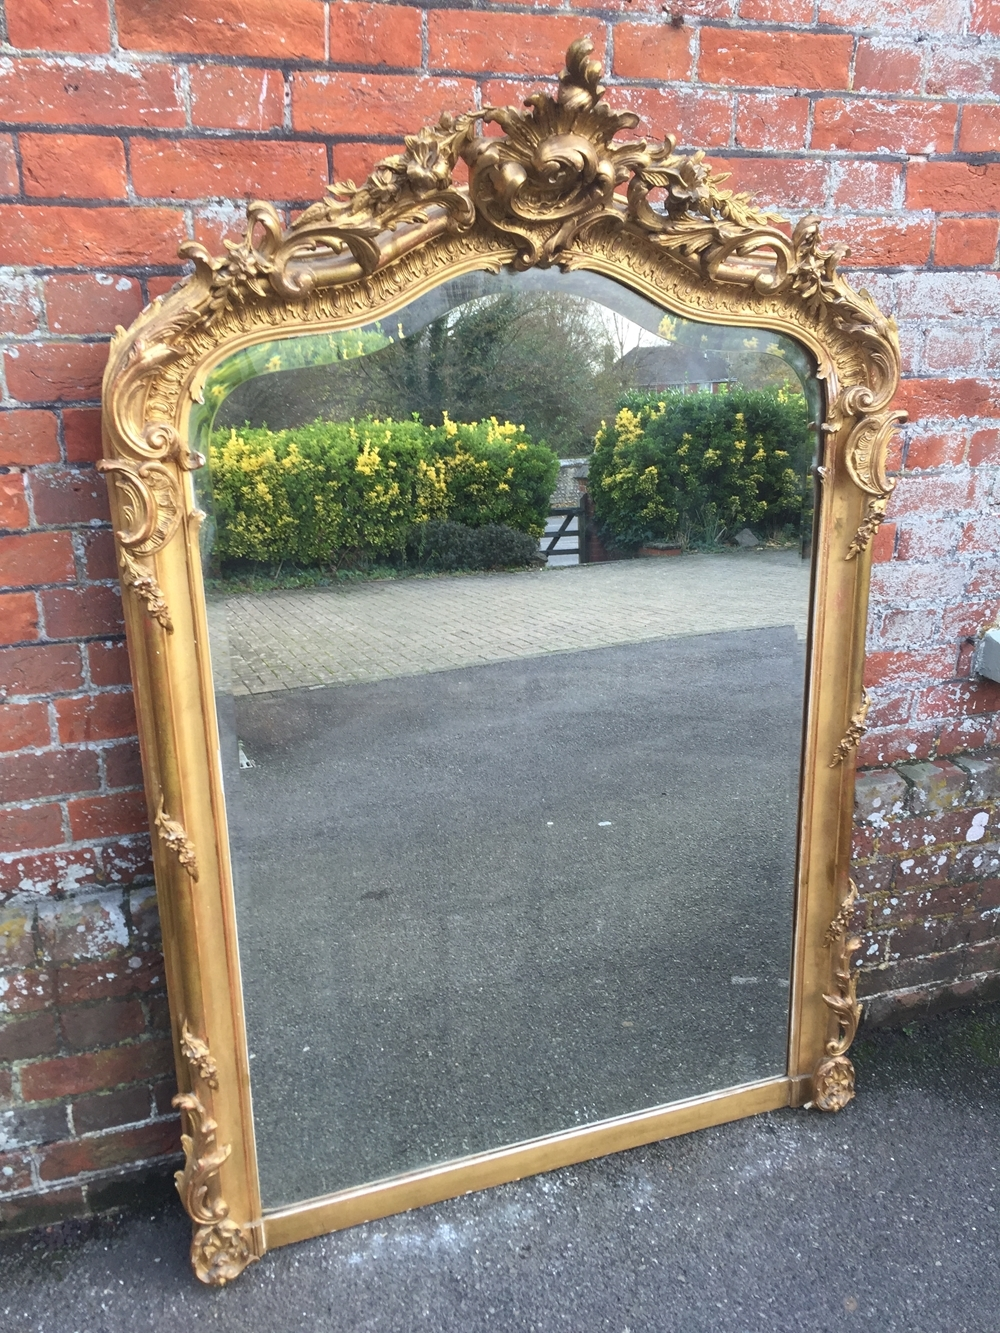 An Absolutely Superb Large Antique 19th Century French Carved Wood Pertaining To Antique Gilt Mirrors (Image 5 of 15)